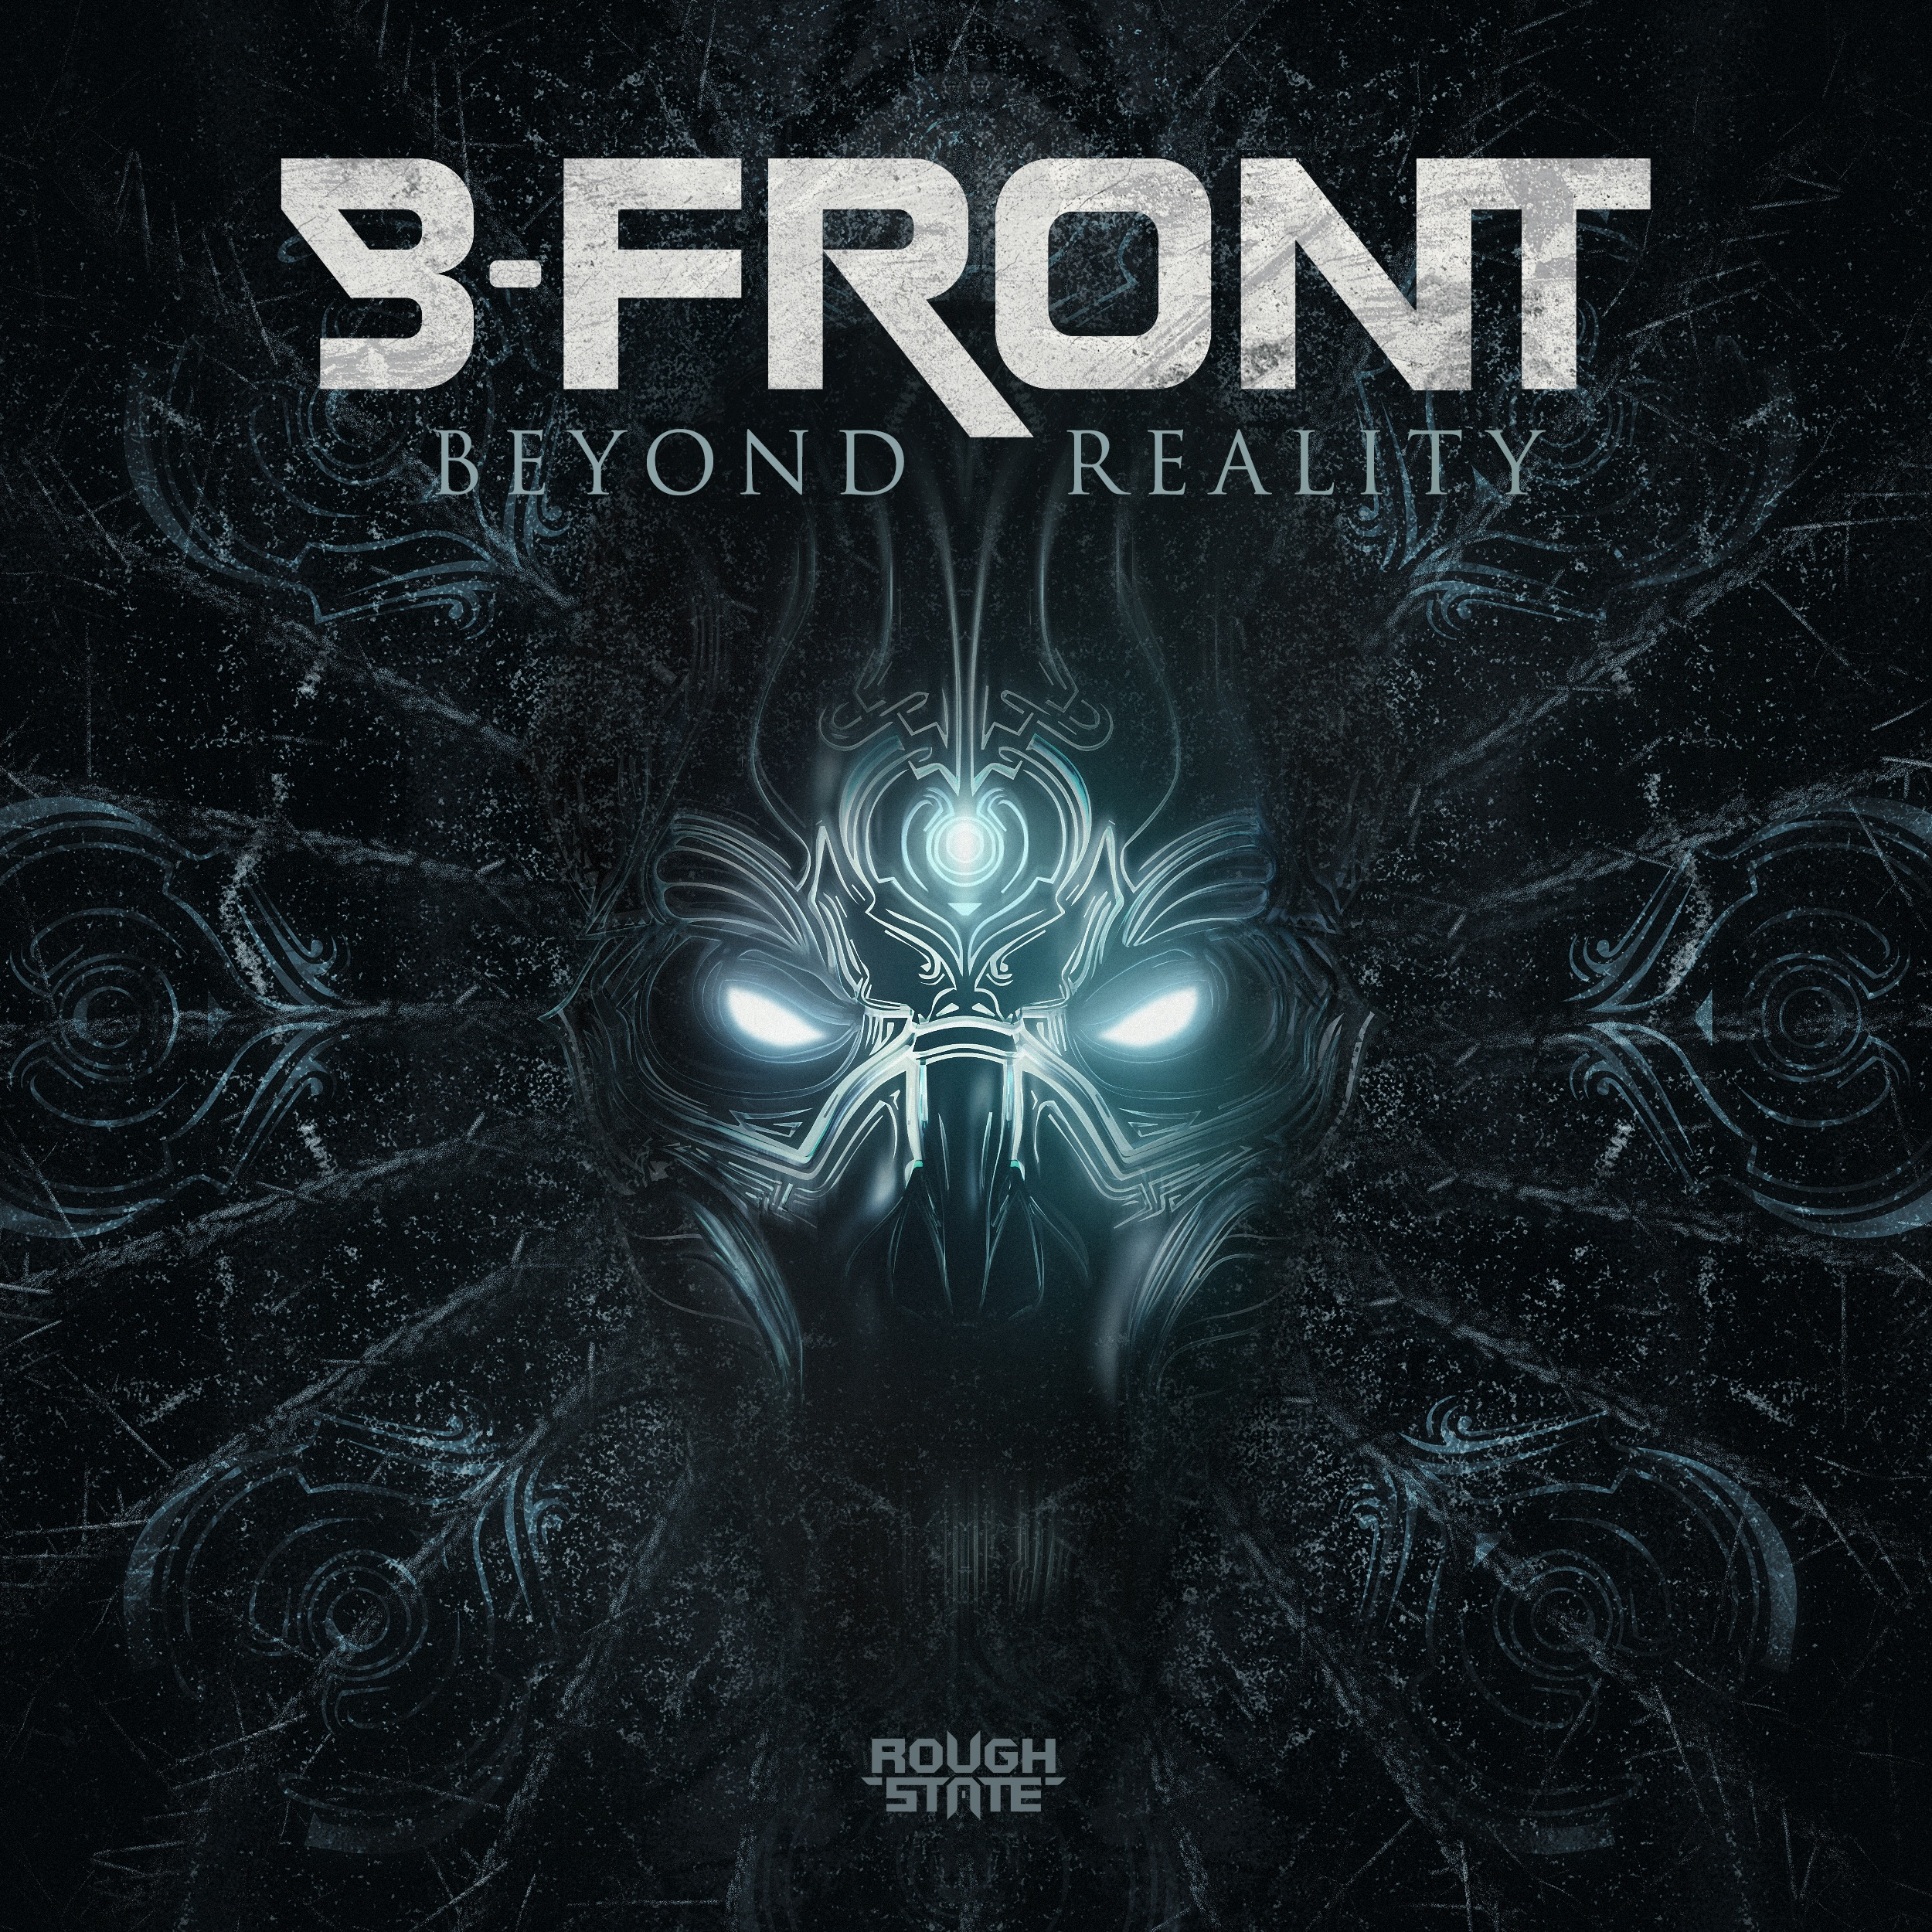 B-Front - Beyond Reality